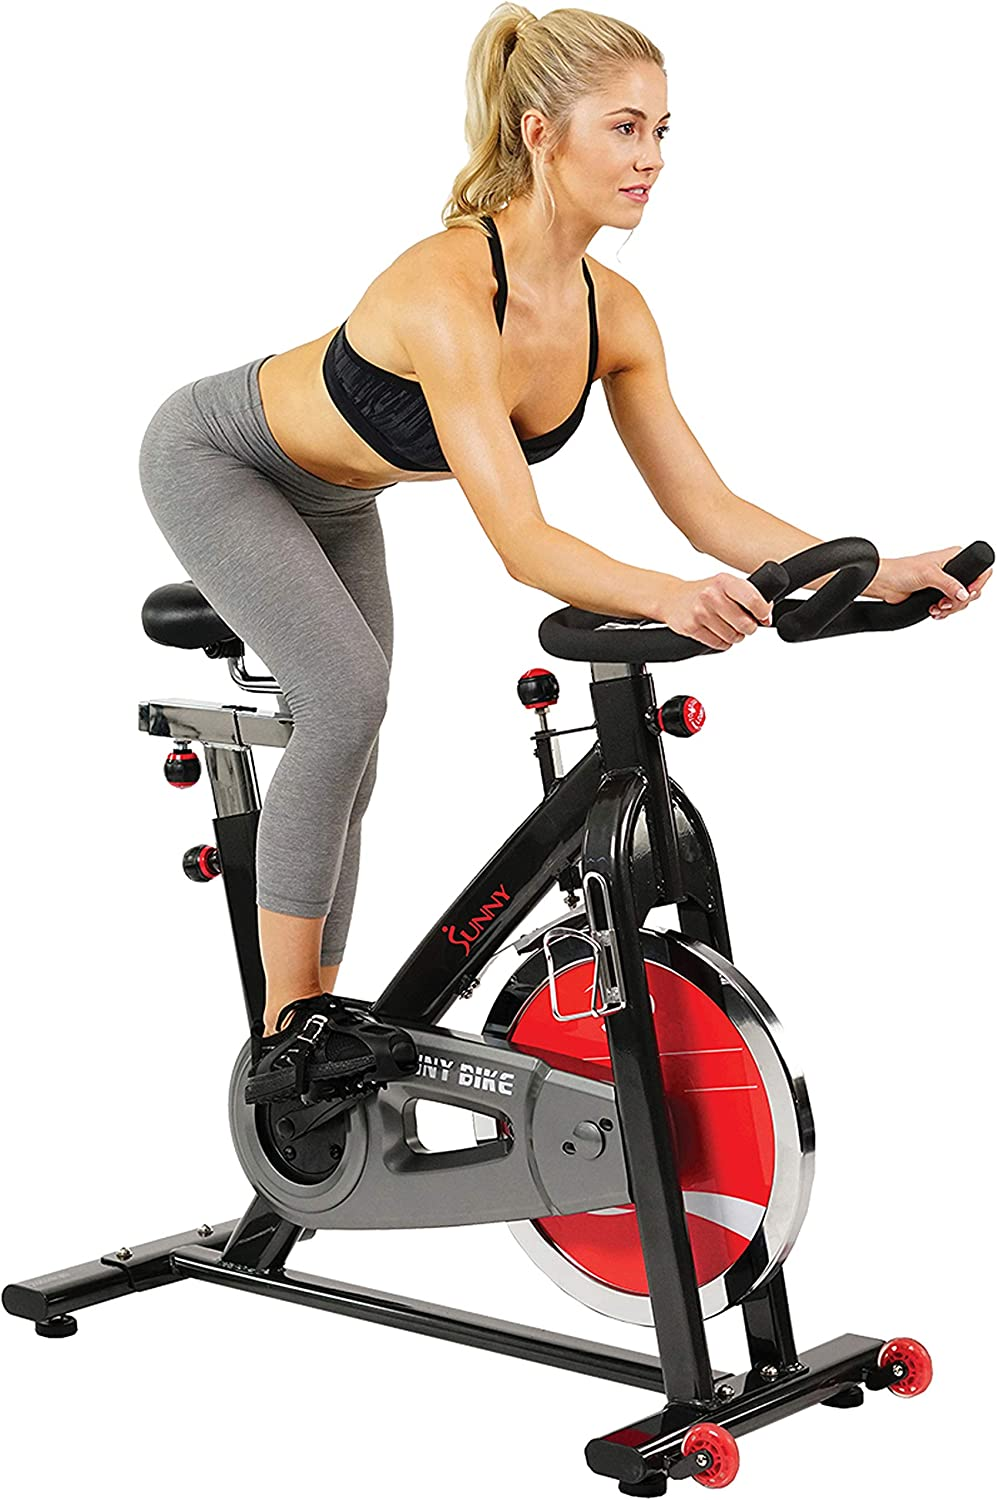 best exercise bike to lose weight: Sunny Health & Fitness Indoor Cycle Bike